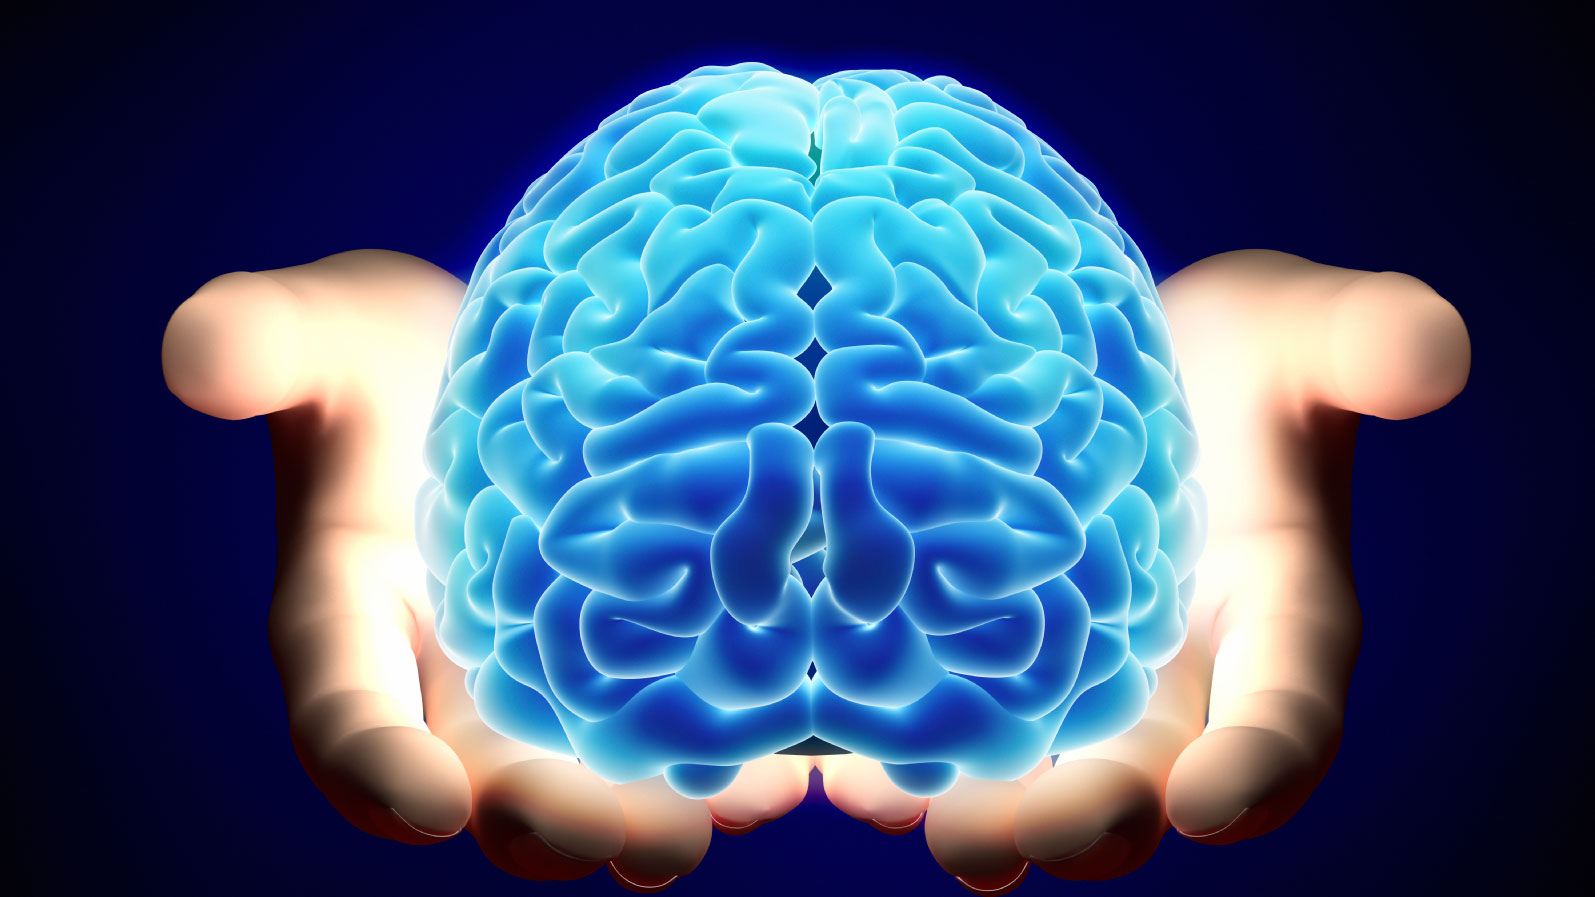 Amazing Brain Pictures & Backgrounds